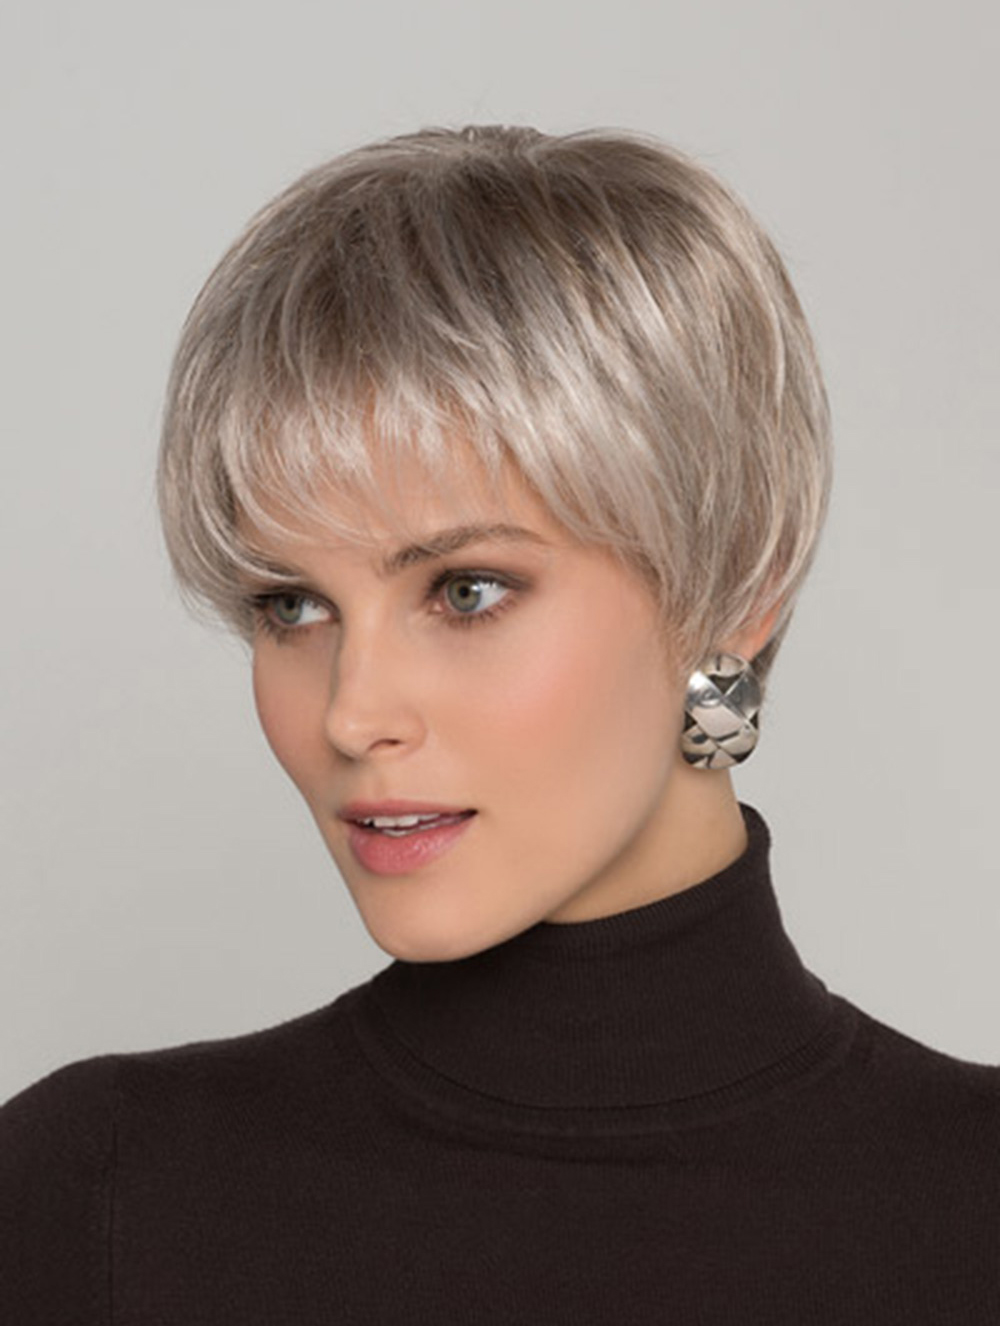 straight grey 8 inches boycuts short hairstyles